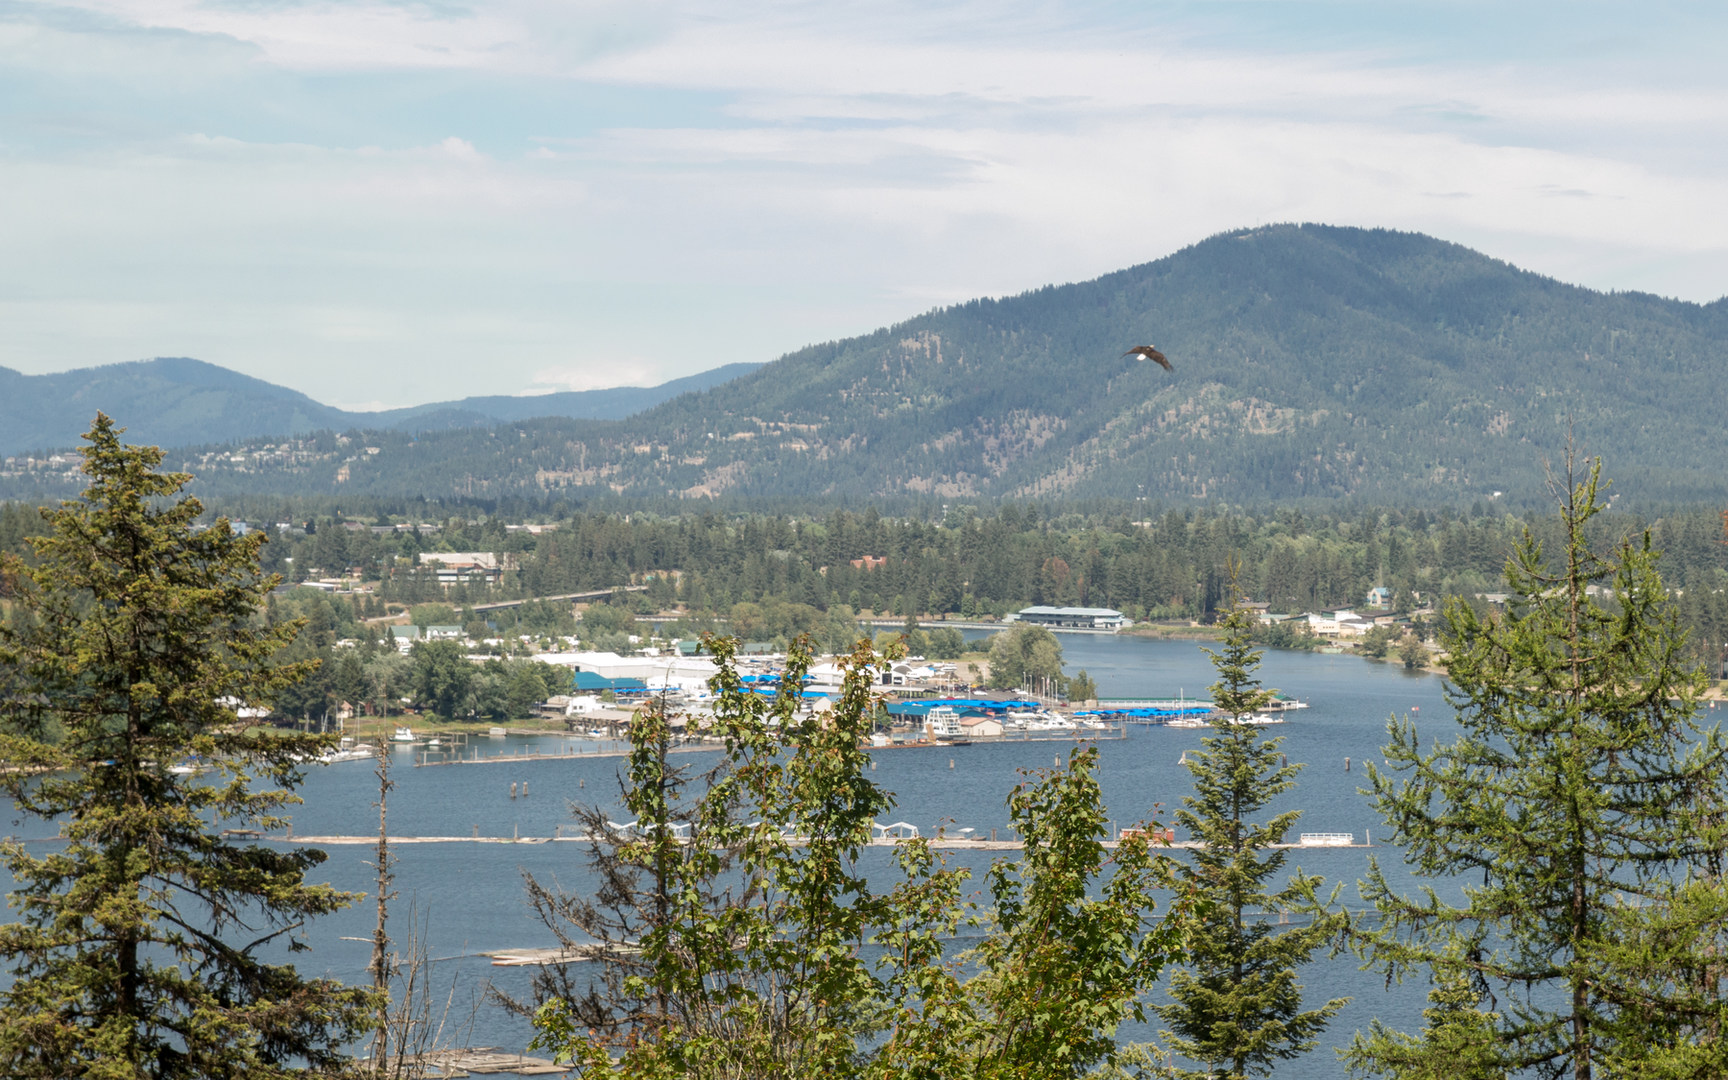 eagle bay cougars personals Search all montana real estate for sale on one easy-to-use site including homes, condos, townhomes, land, and foreclosure properties for sale.